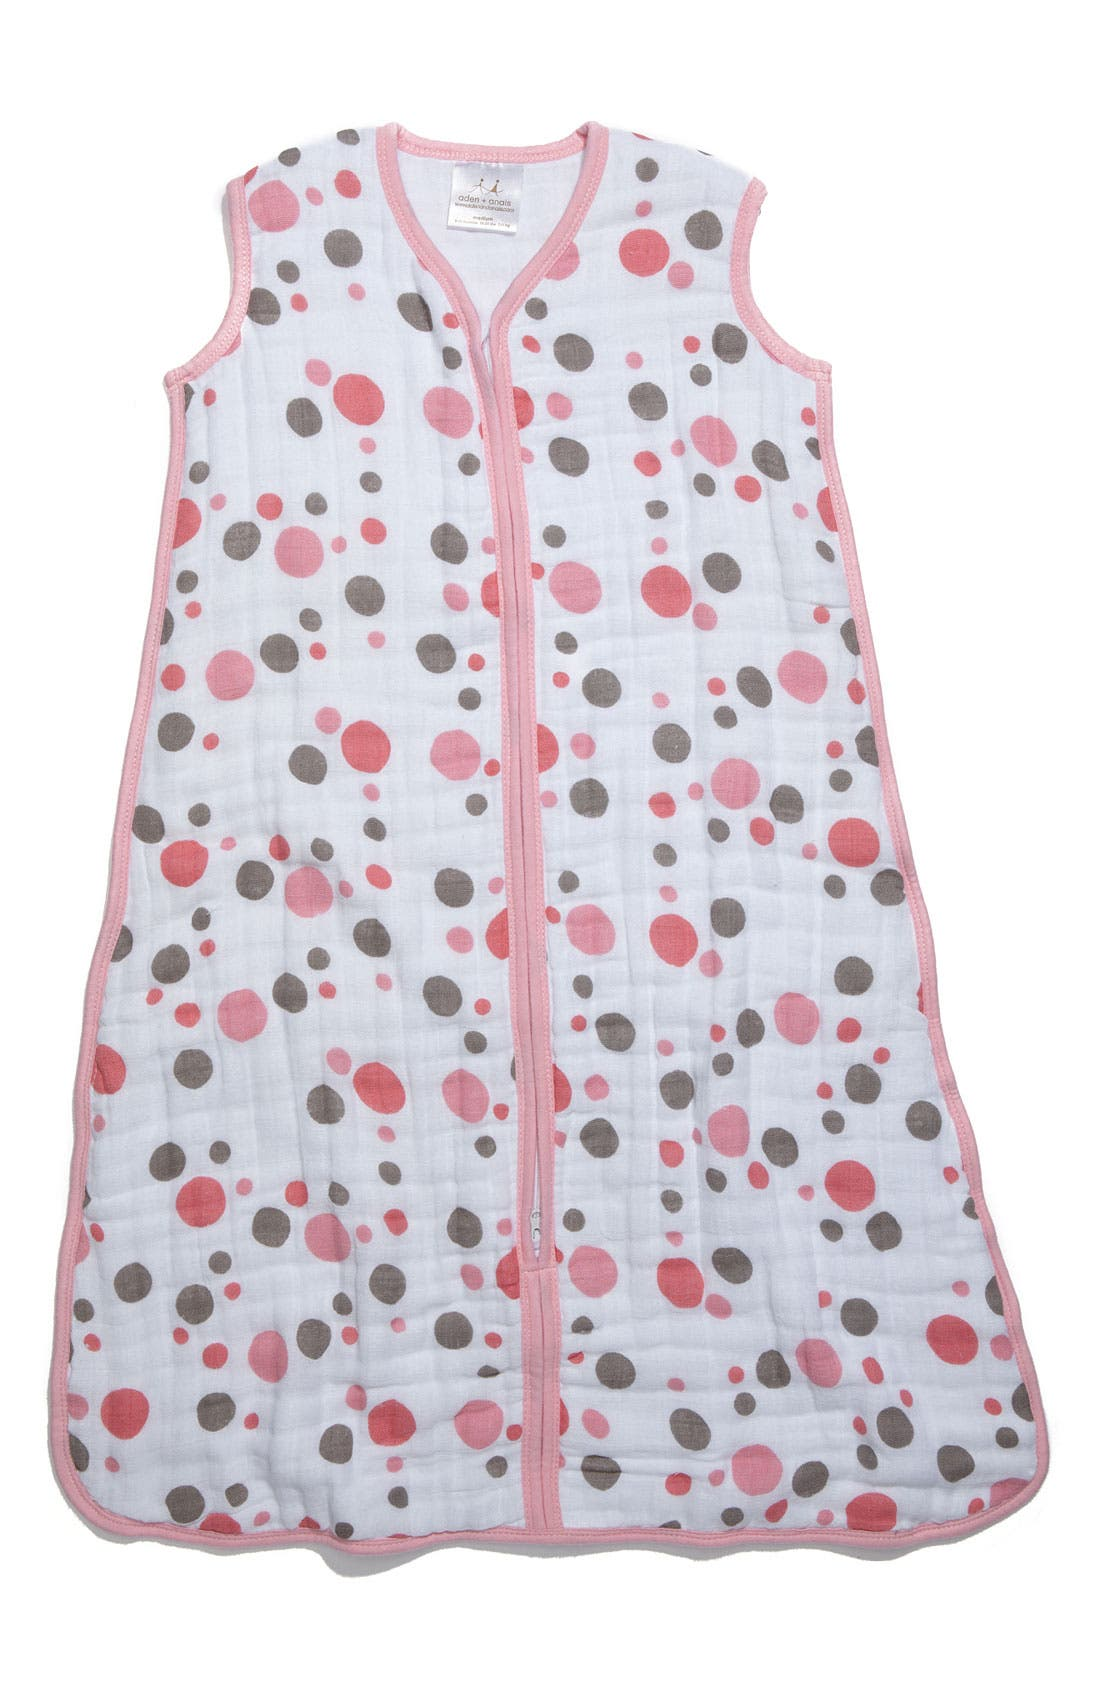 Main Image - aden + anais 'Cozy Sleeping Bag' Wearable Blanket (Baby)